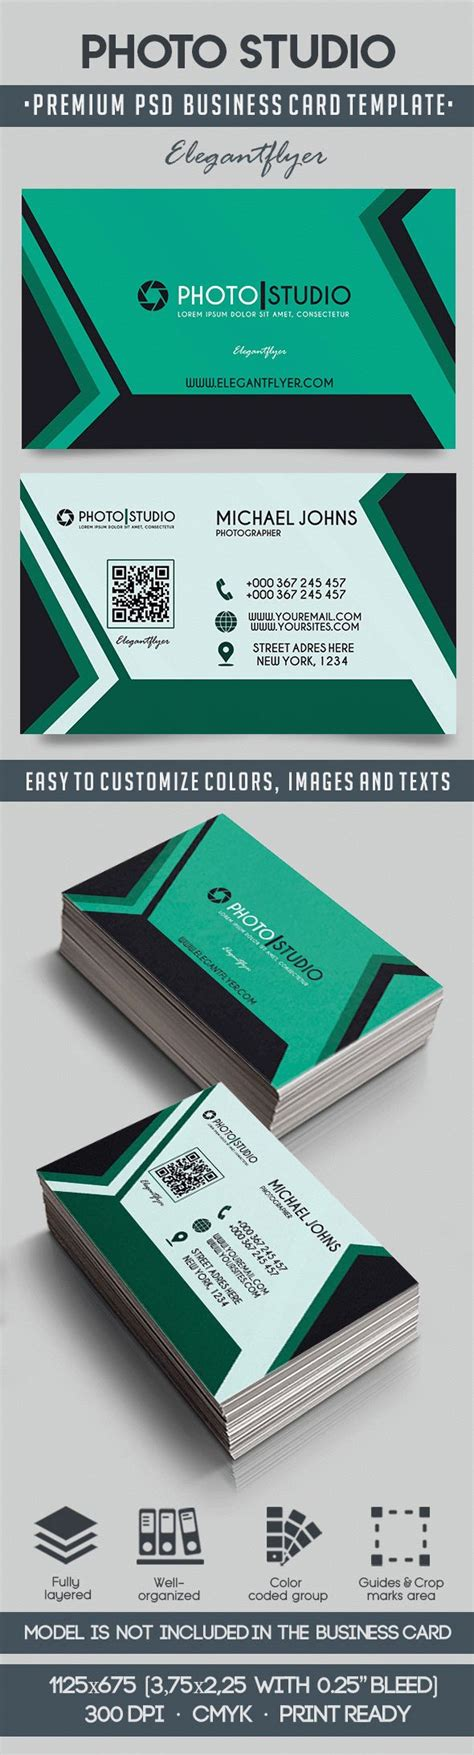 premium business card templates photo studio premium business card templates psd by